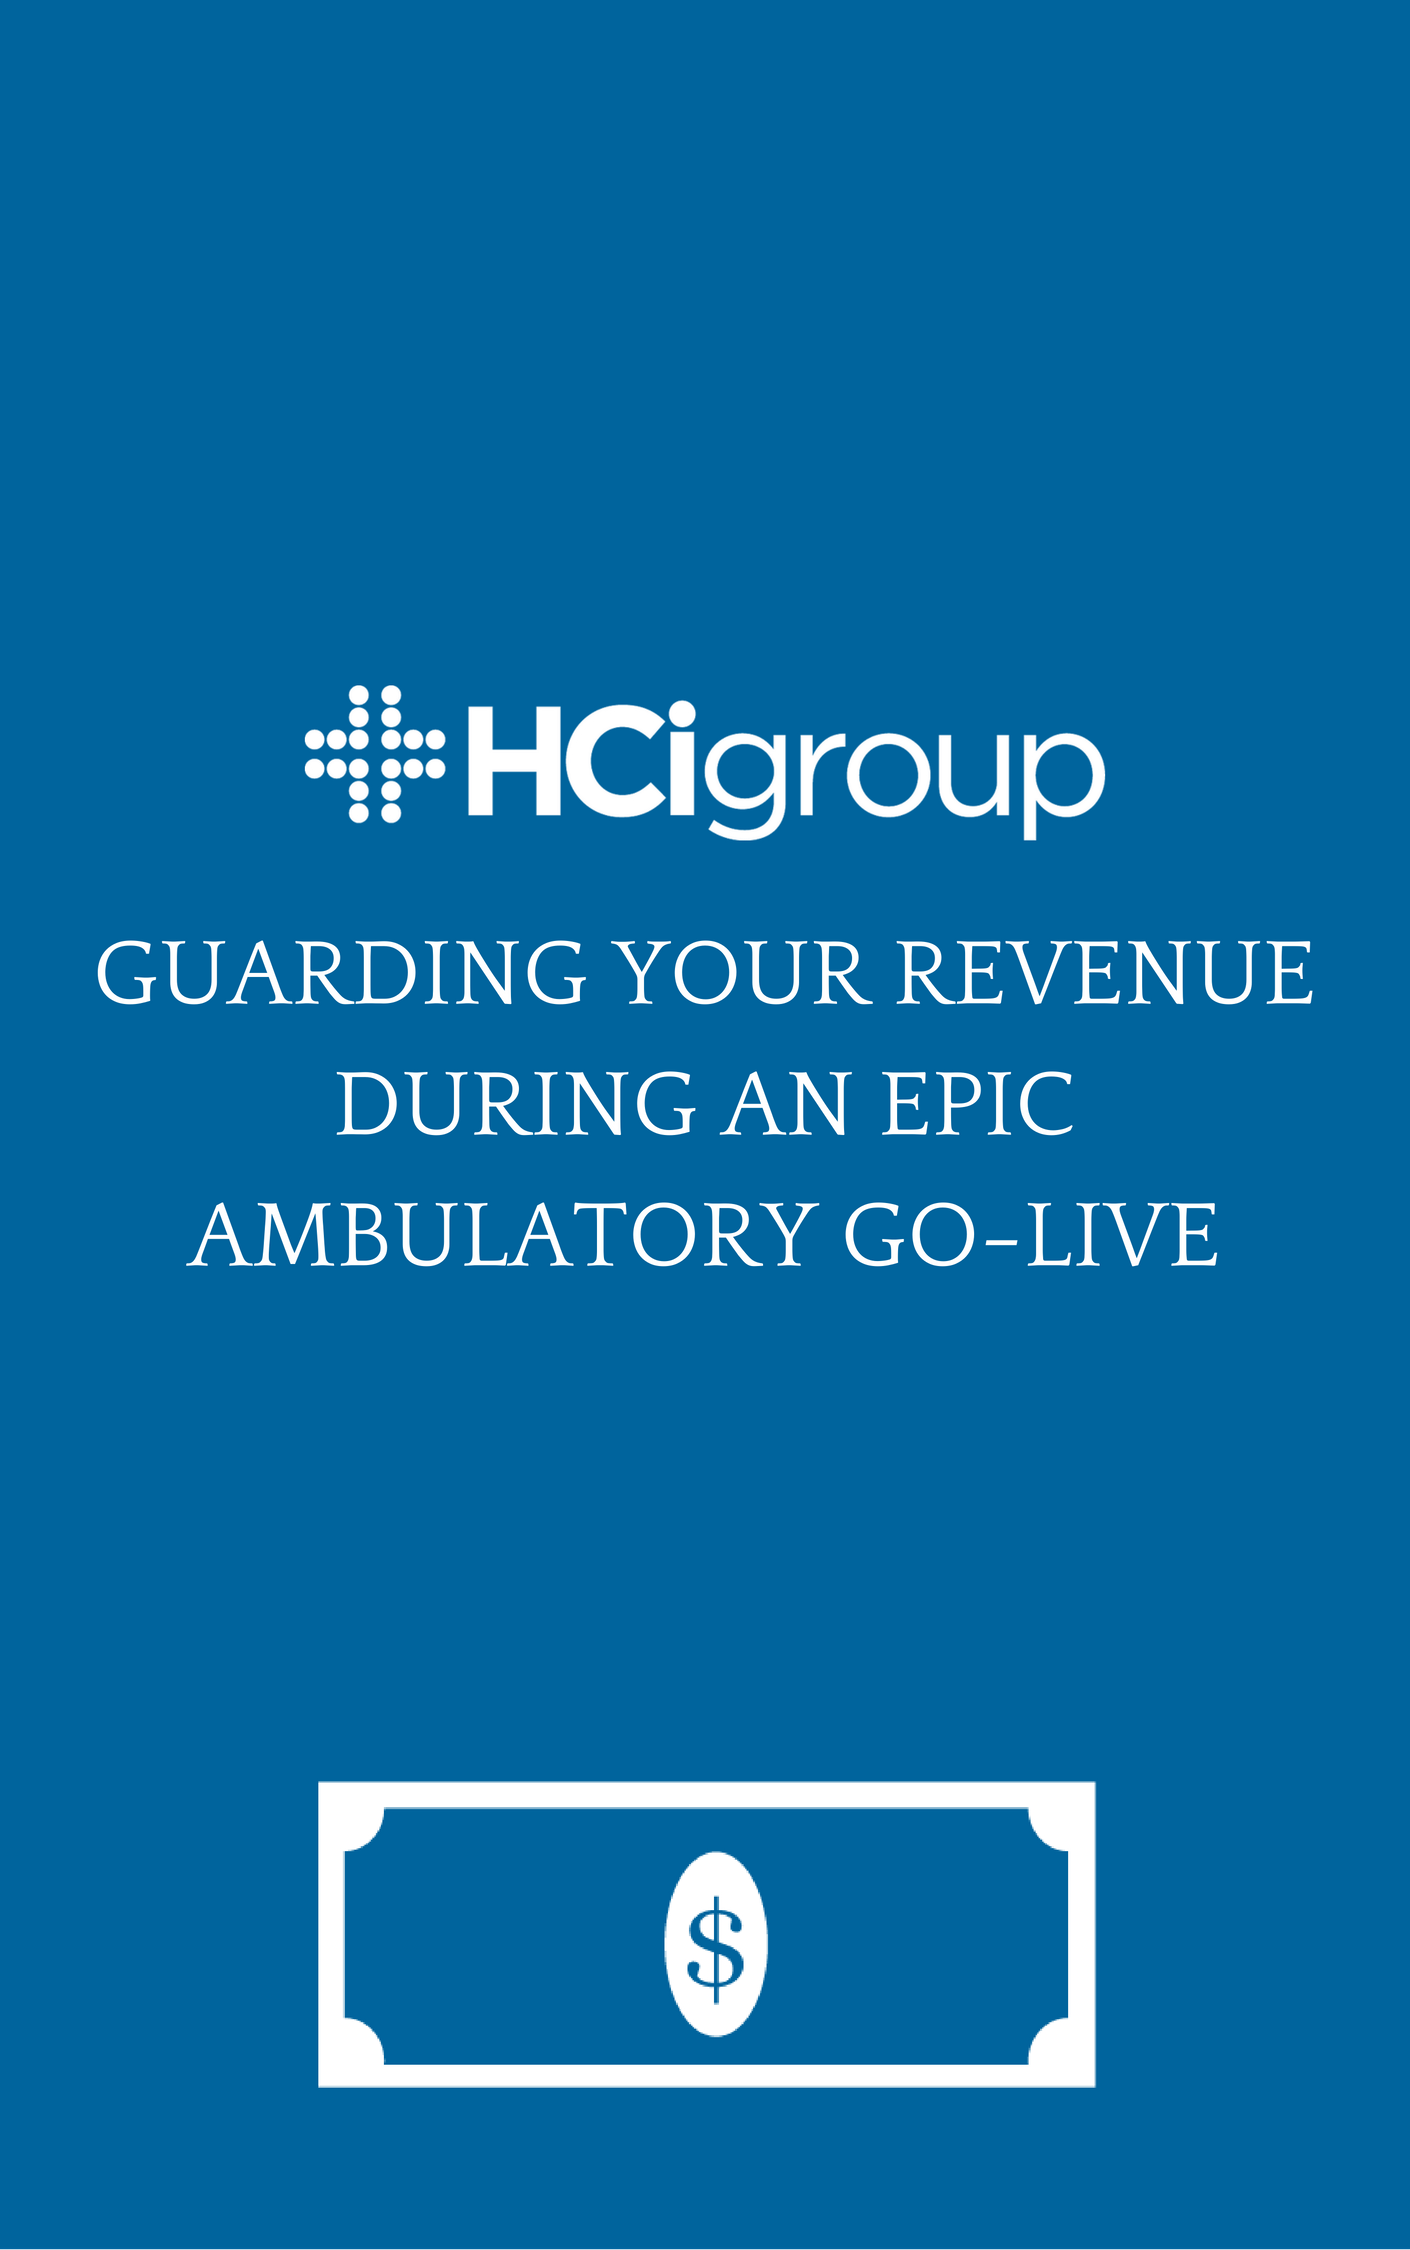 Ambulatory EHR Go-Live: 6 Charging Issues to Watch for